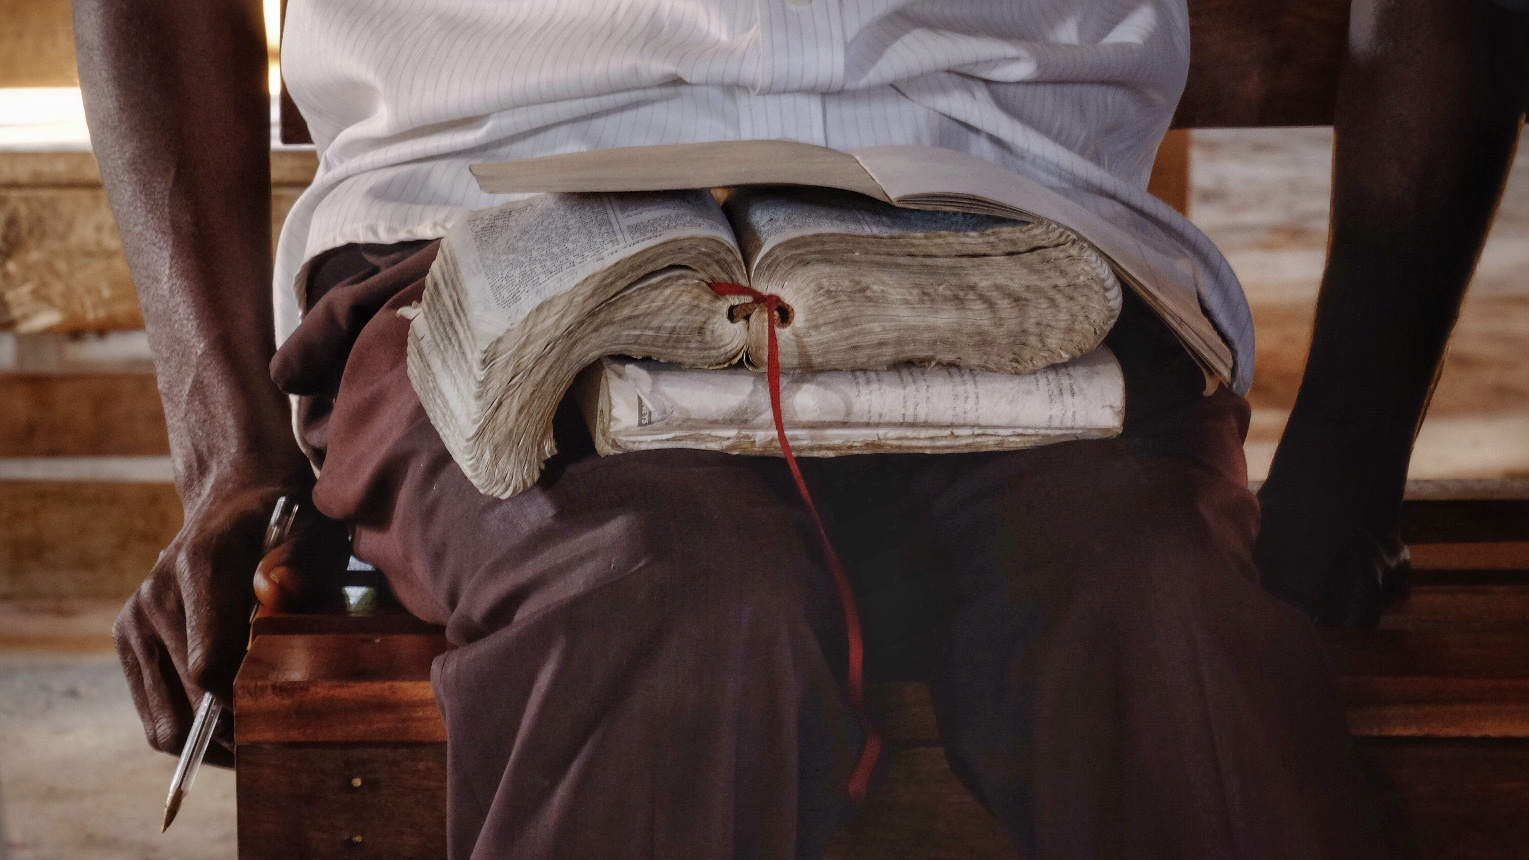 This student's Lozi Bible was missing both Genesis and Revelation.